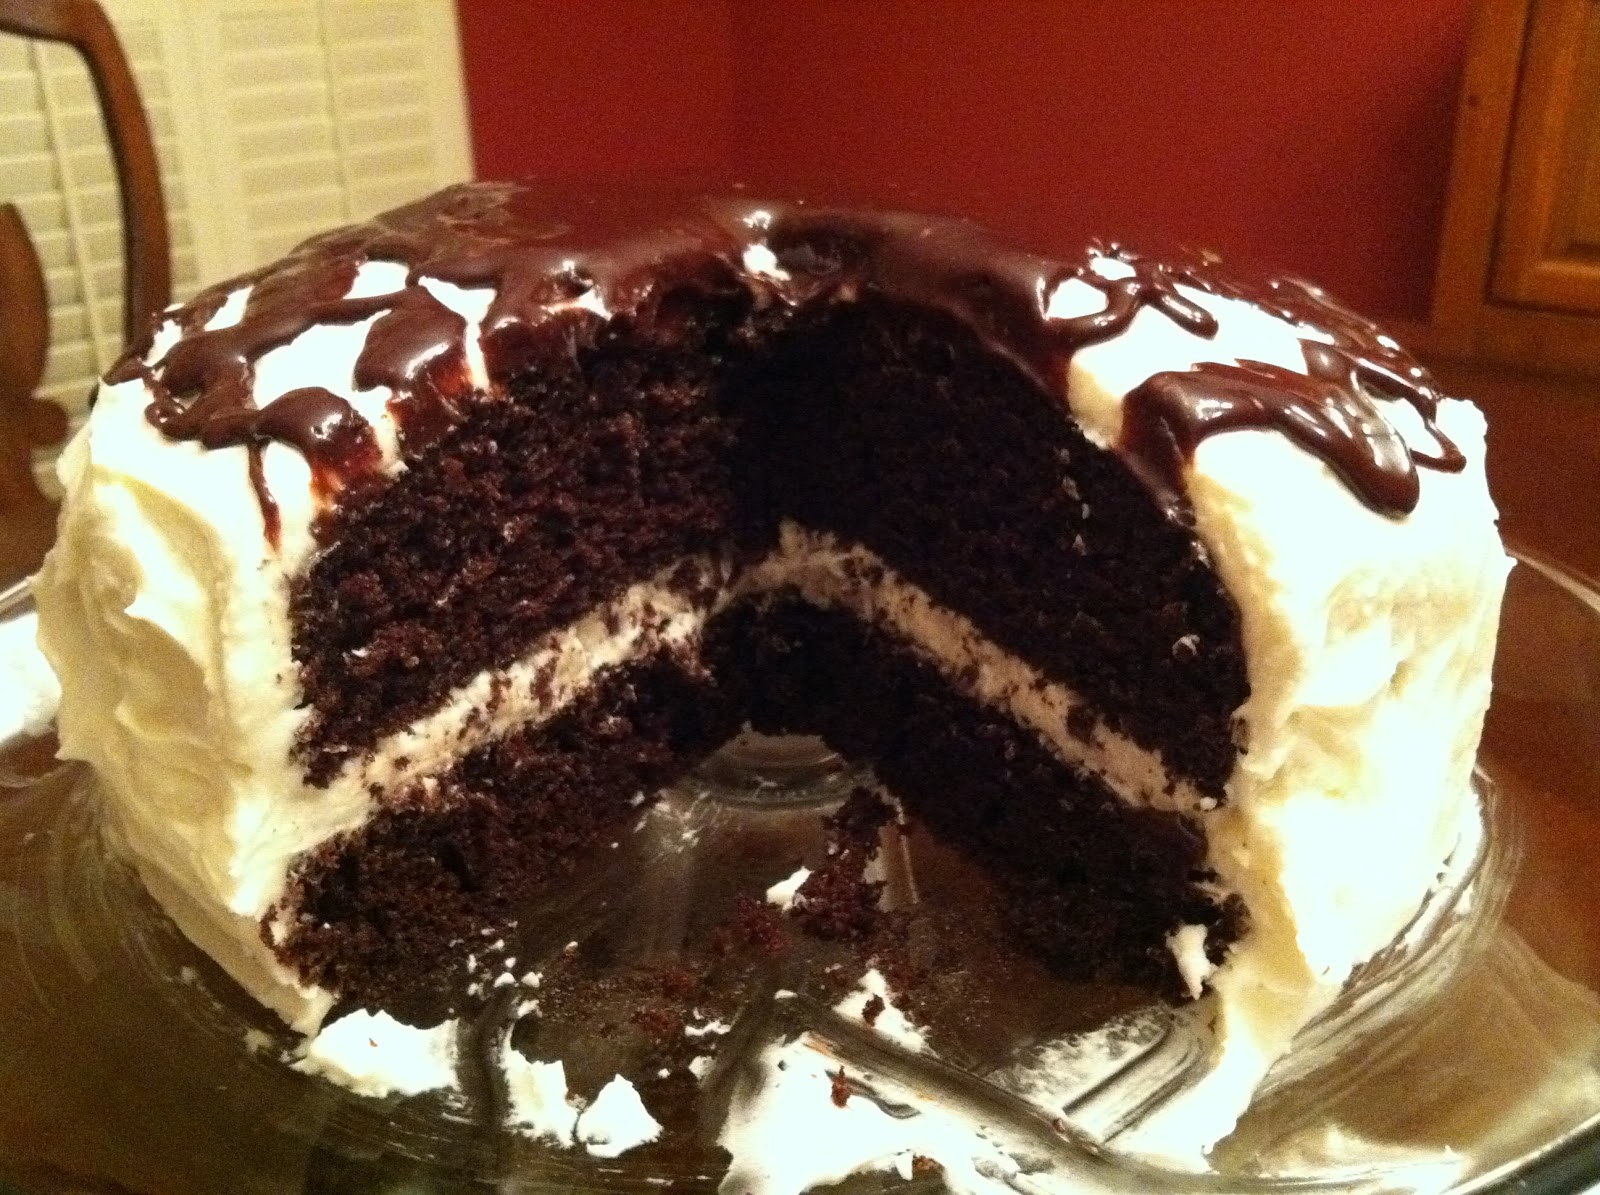 Chocolate Cake with Buttercream Frosting and Chocolate Ganache